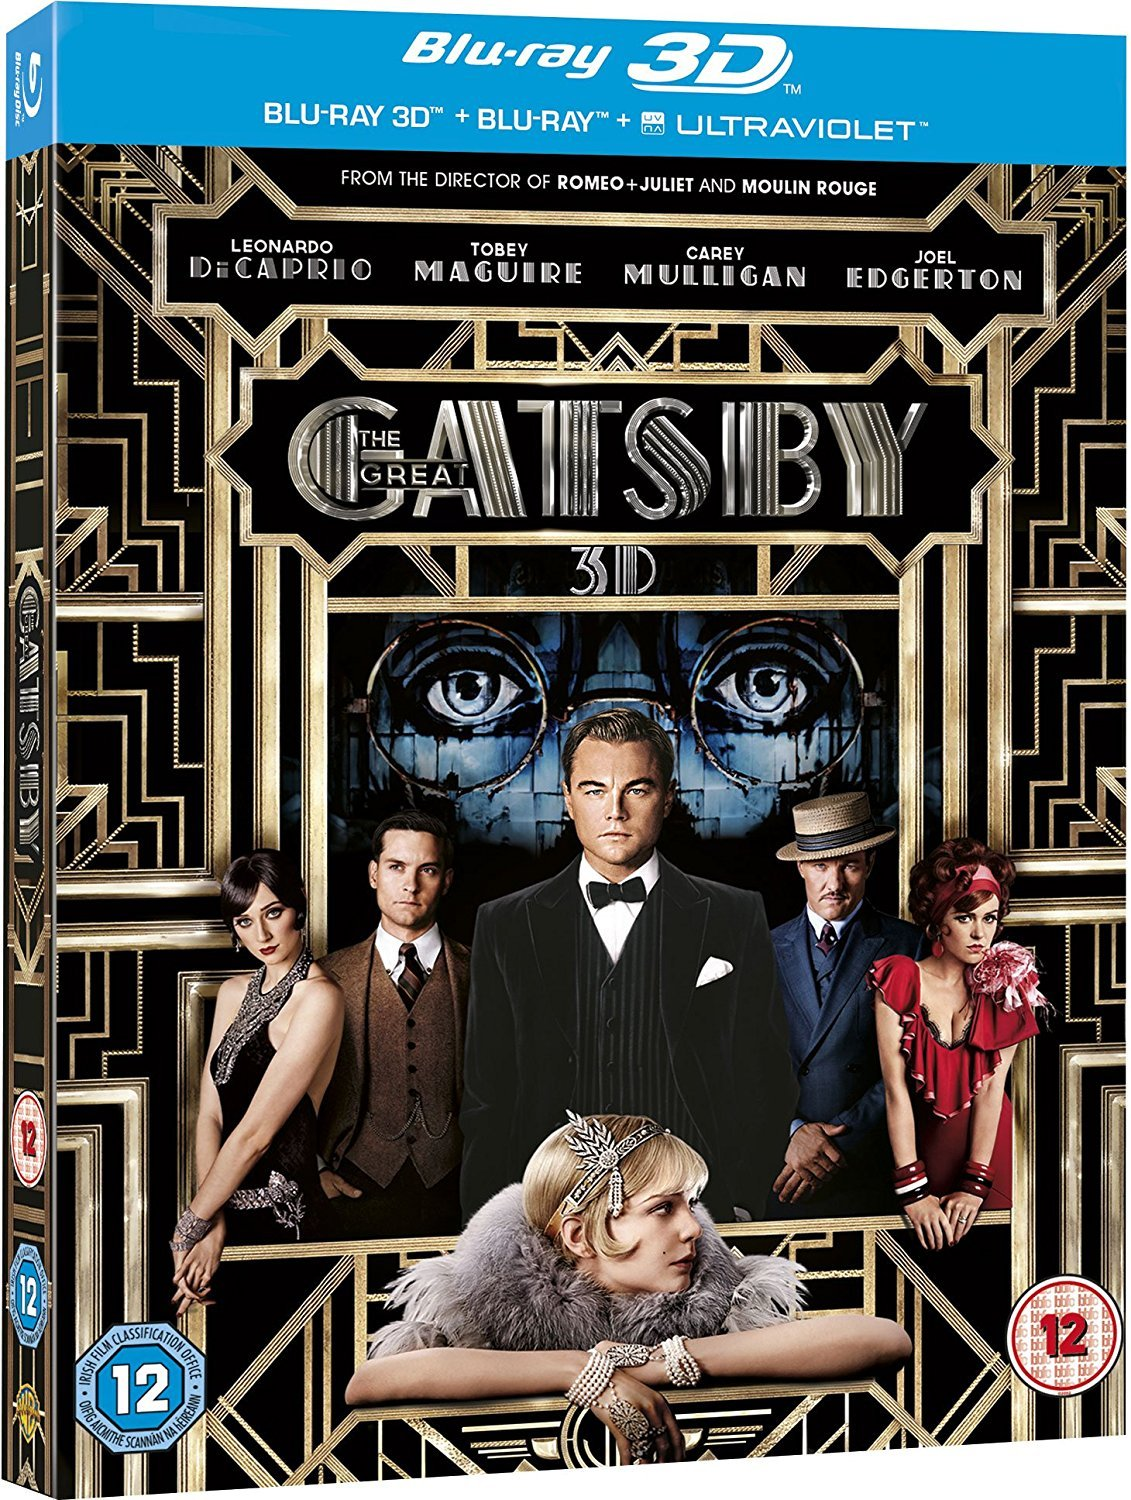 symbolism and imagery in gatsby The symbolism of owl-eyes appear again in chapter 3 but in a different way this time the symbol appears through a man with owl-eyed spectacles who spends his time in the library during gatsby's party.